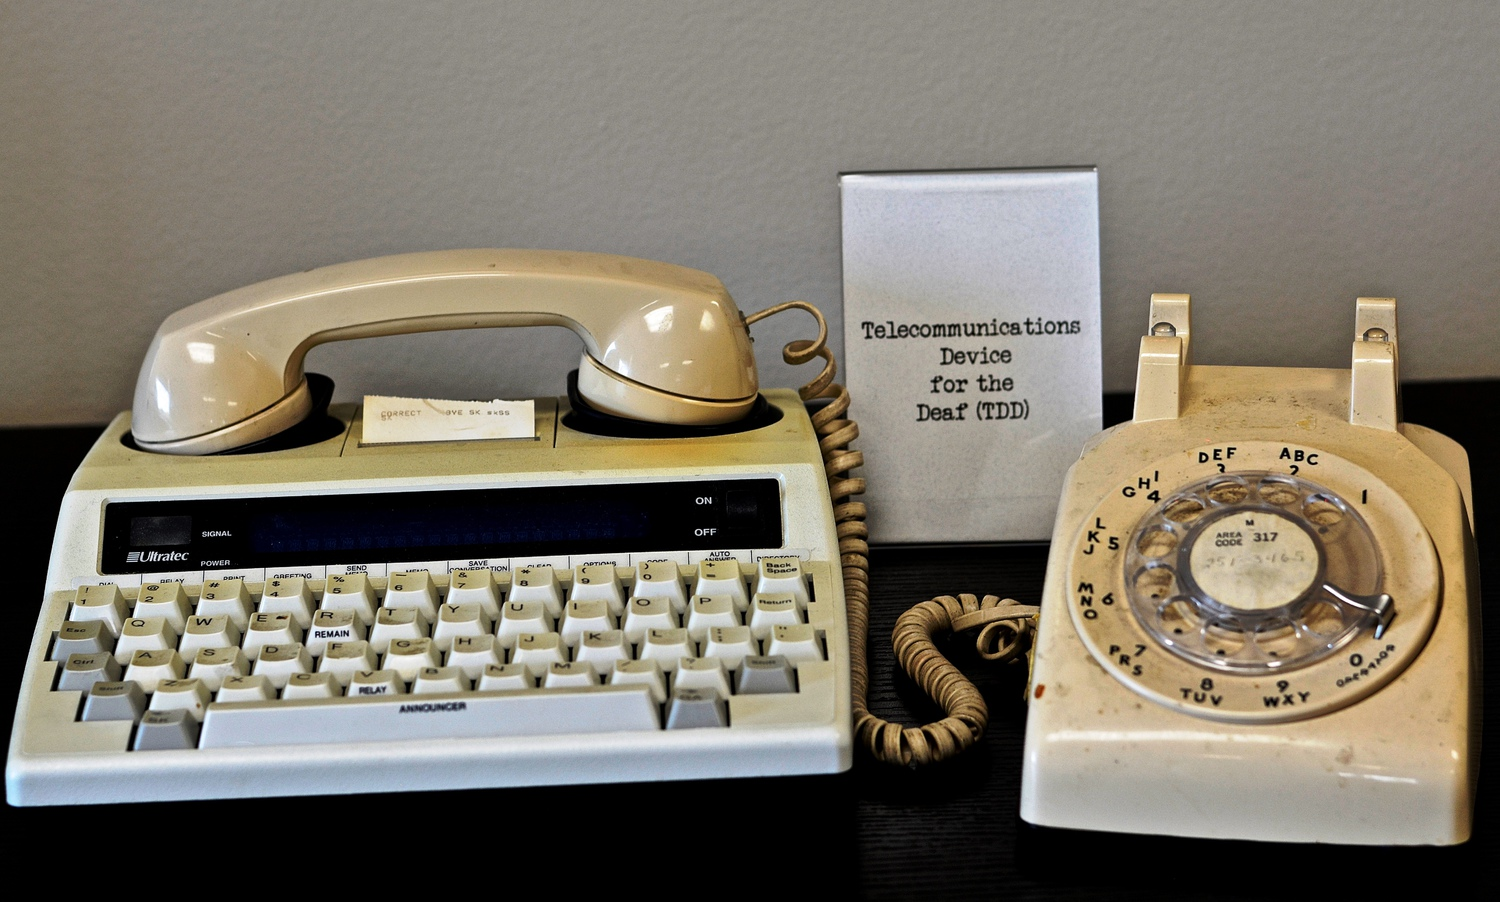 Telecommunications Device for the Deaf (TDD)<br />